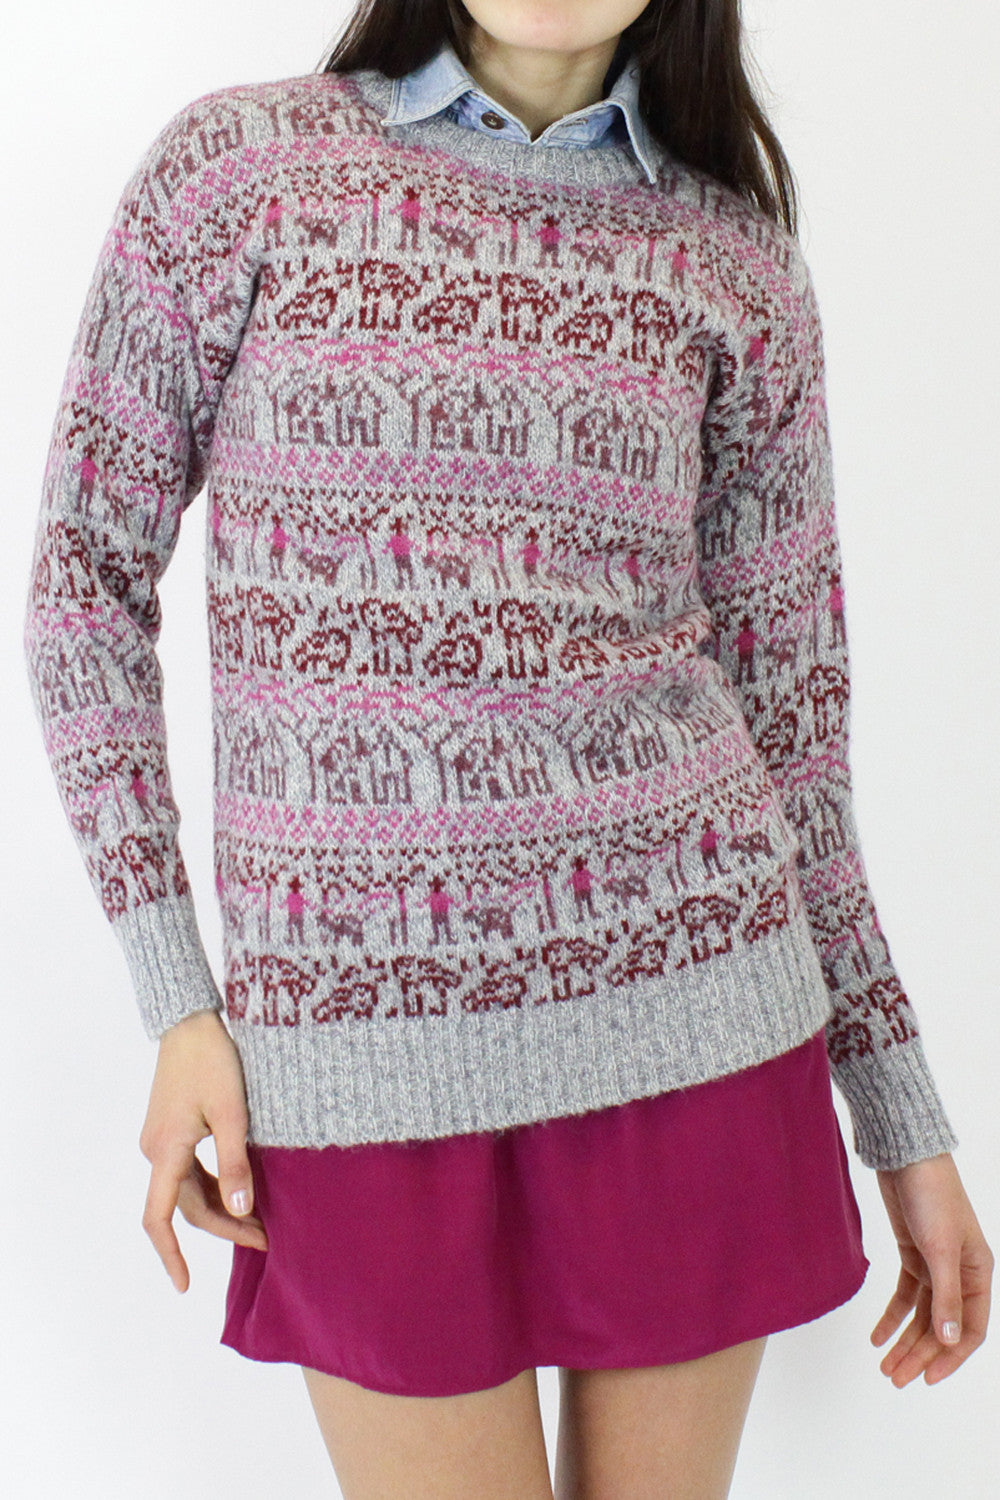 SALE...Fair Isle Wool Sweater XS